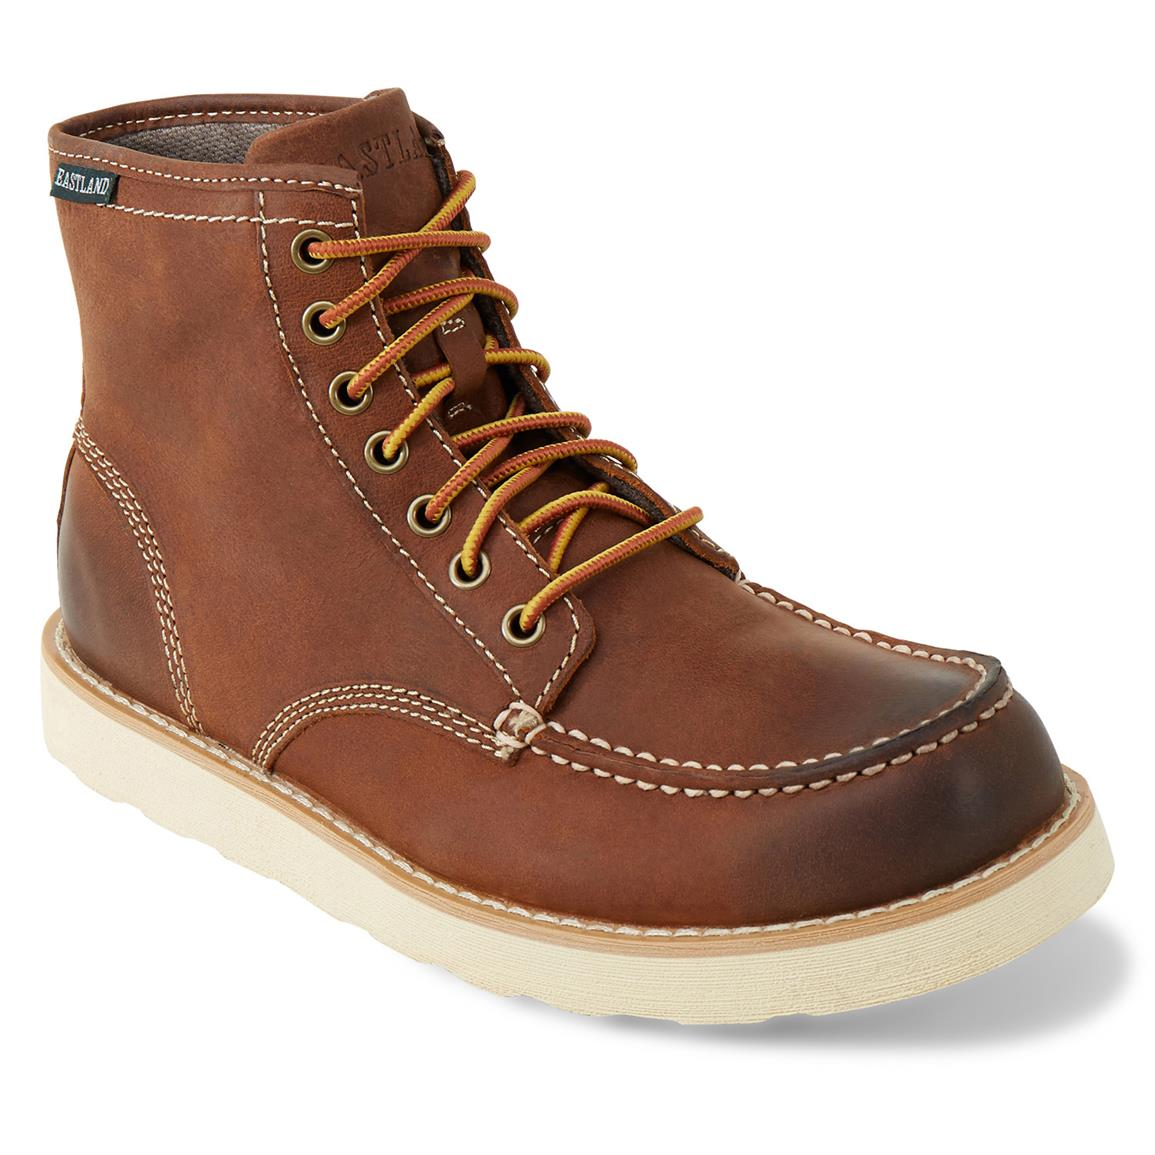 Eastland Lumber Up Casual Boots, Peanut